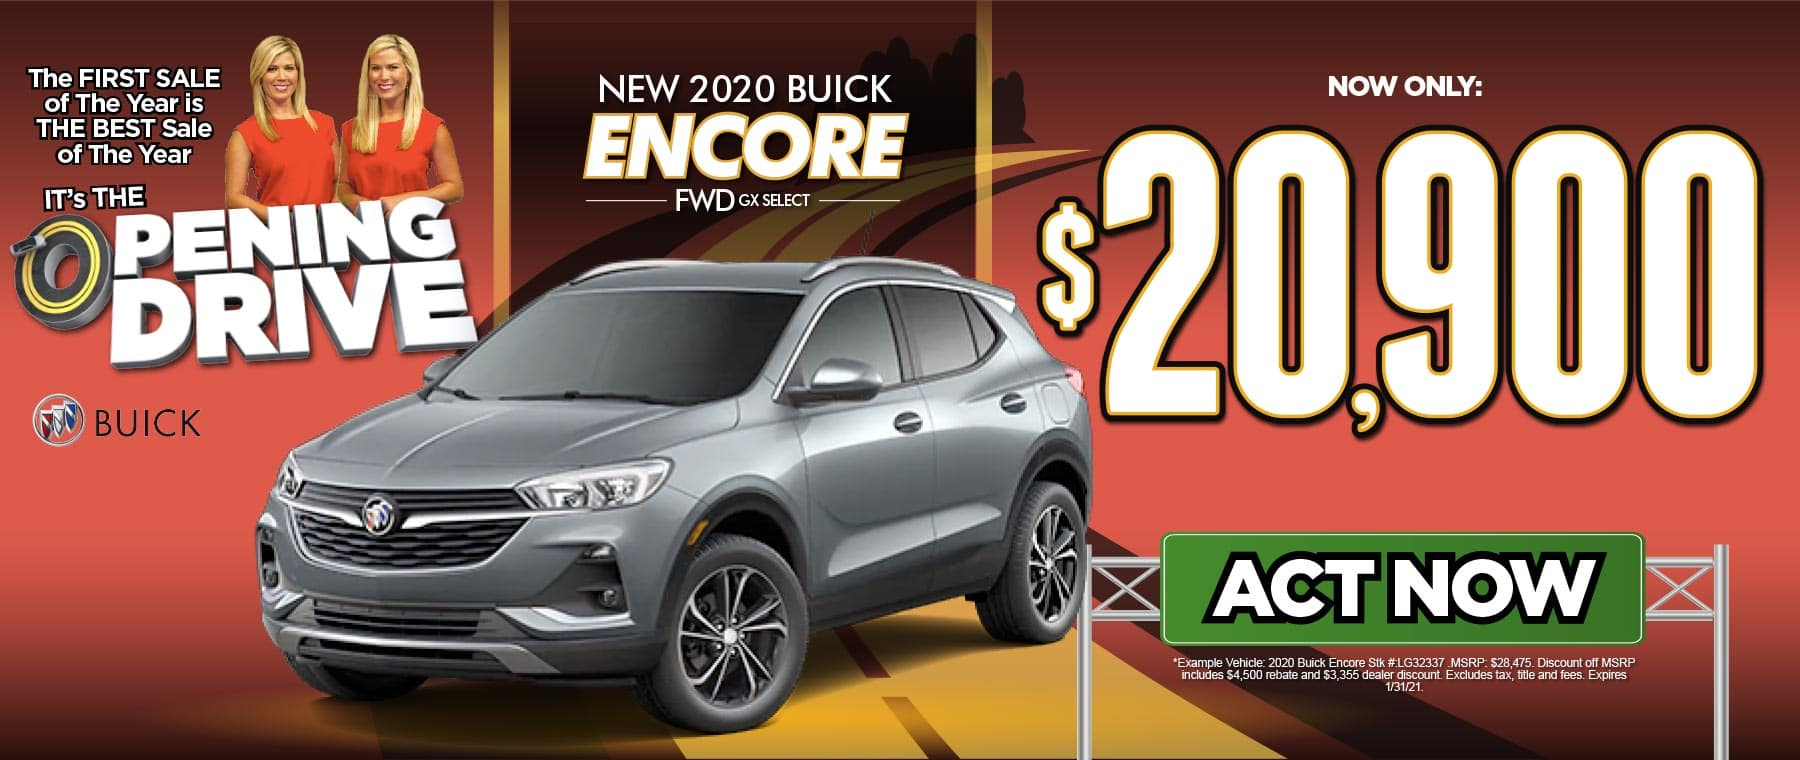 New 2020 Buick Encore FWD GX Select Now Only $20,900!*